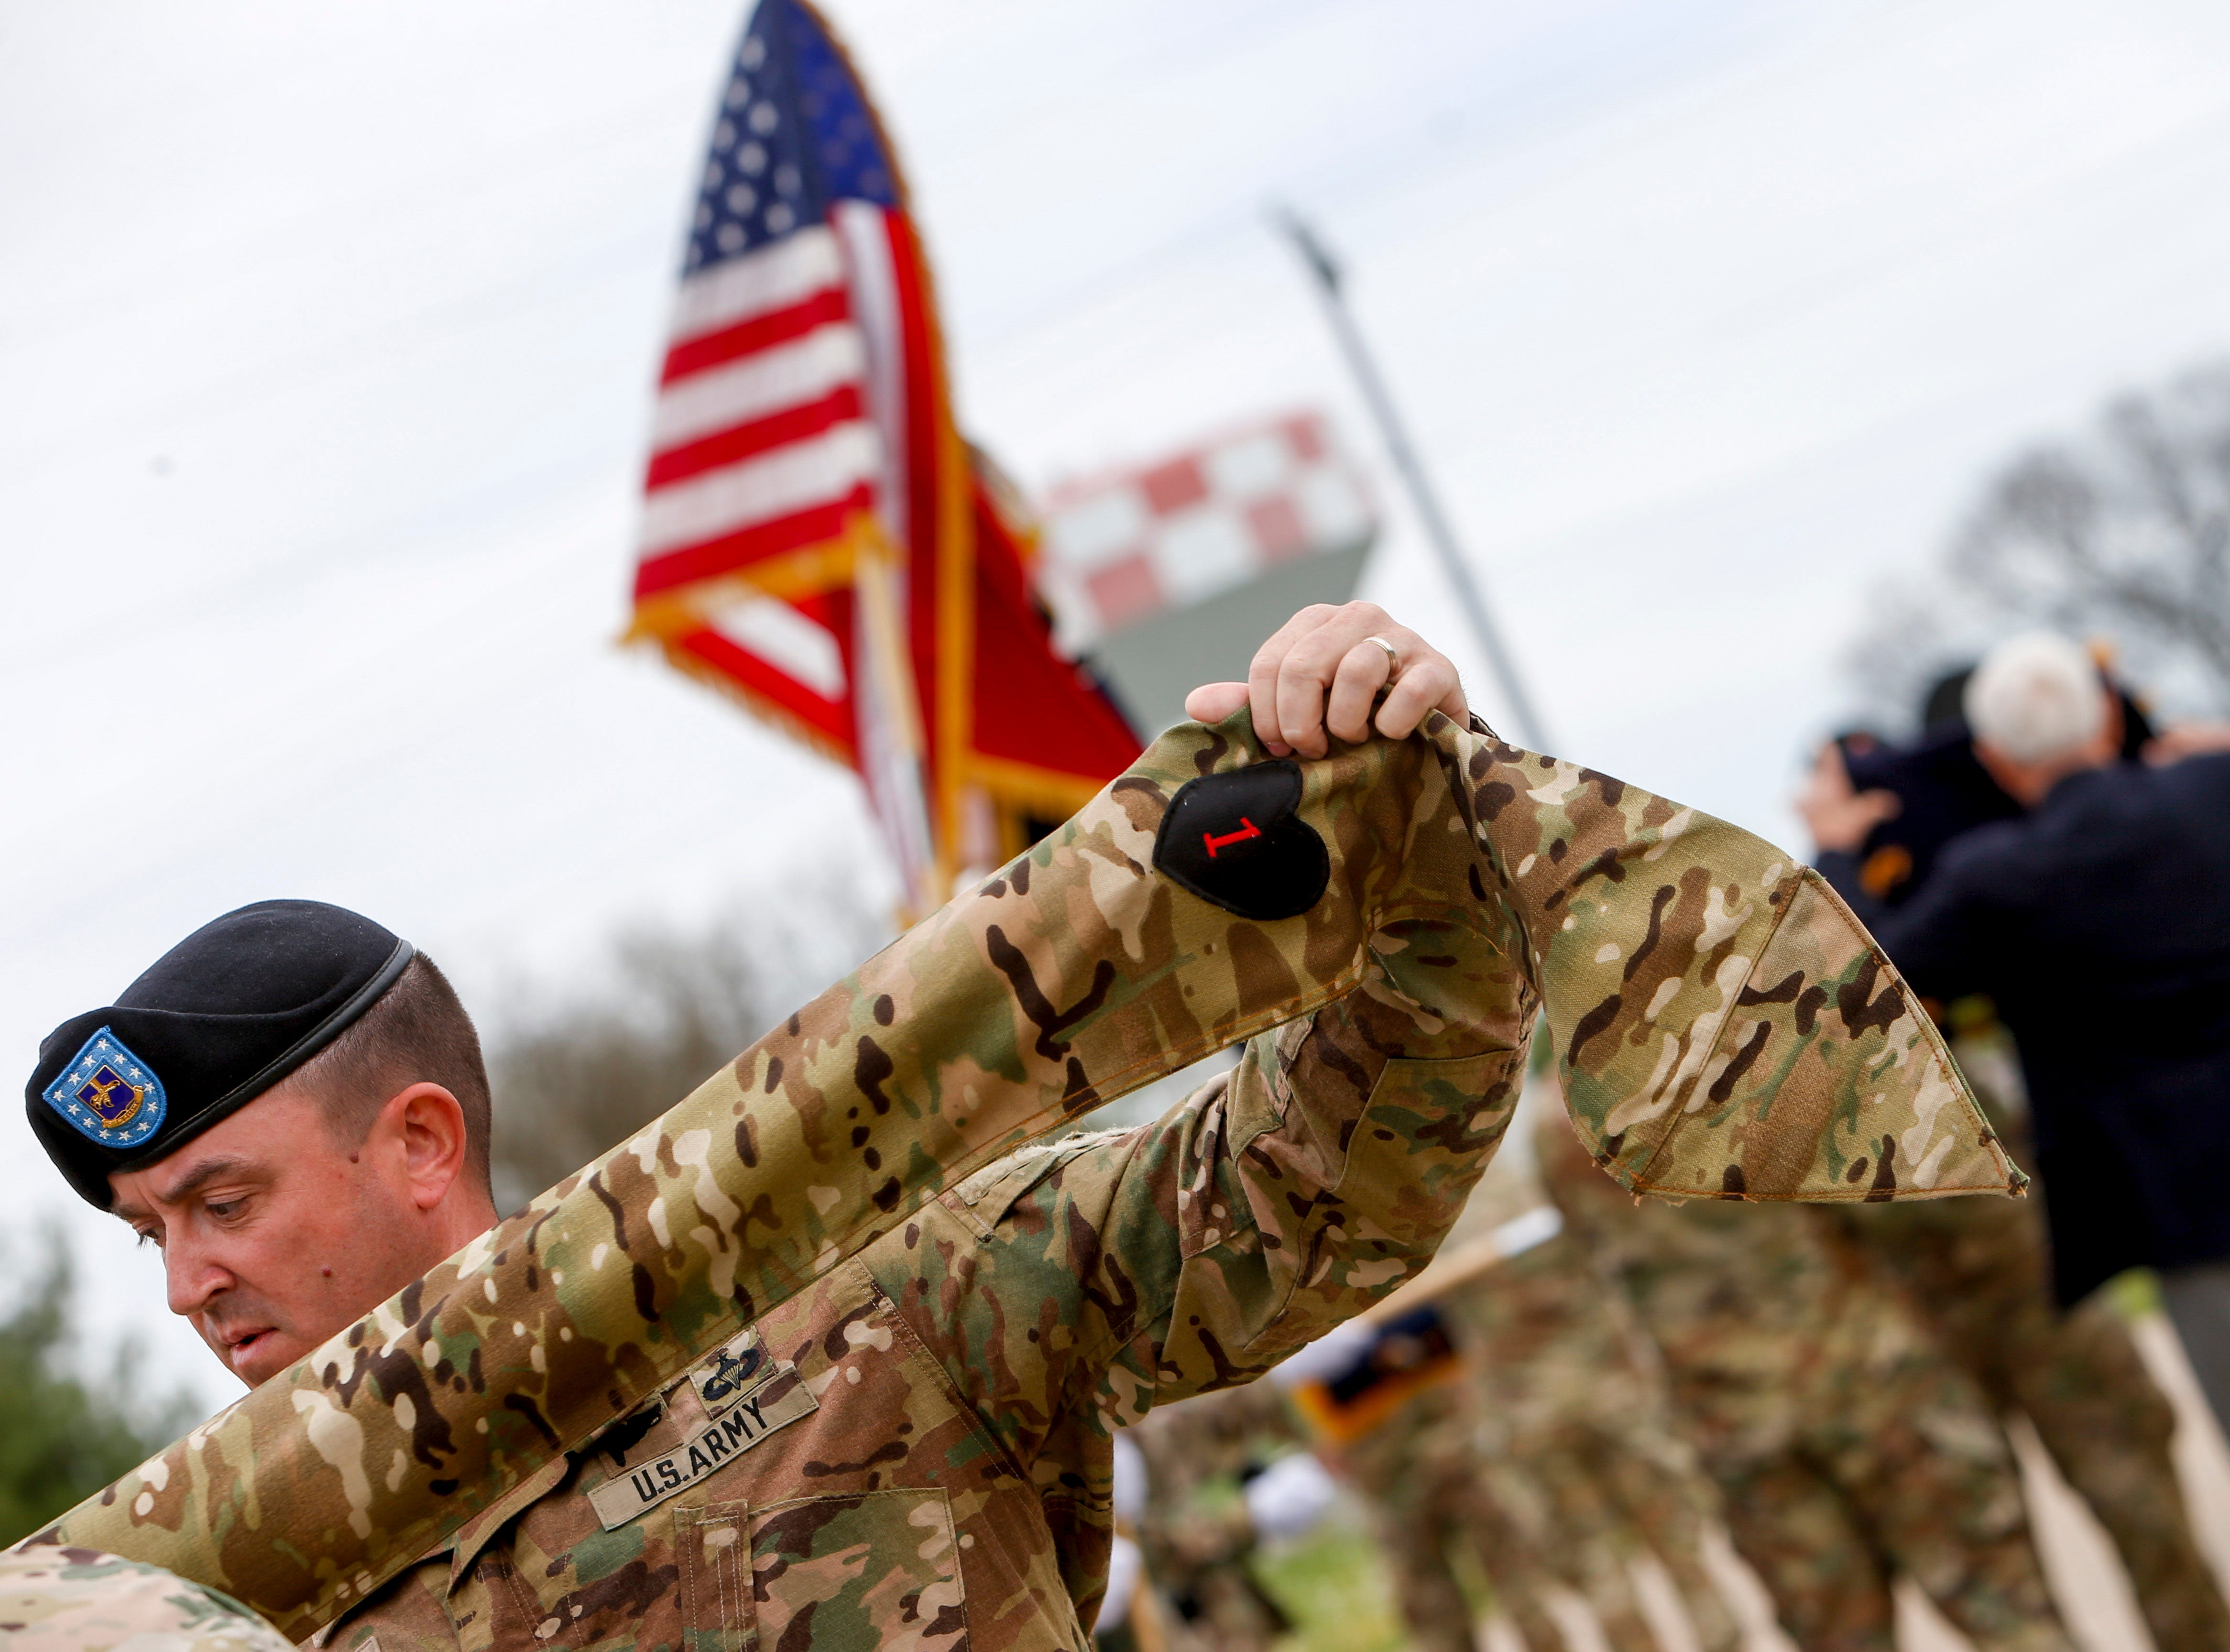 Command Sgt. Maj. Darren Pleskach stretches out the case to guide the guidon in during a colors casing ceremony prior to deployment for Ukraine at 2 BCT Headquarters in Fort Campbell, KY., on Friday, April 12, 2019.